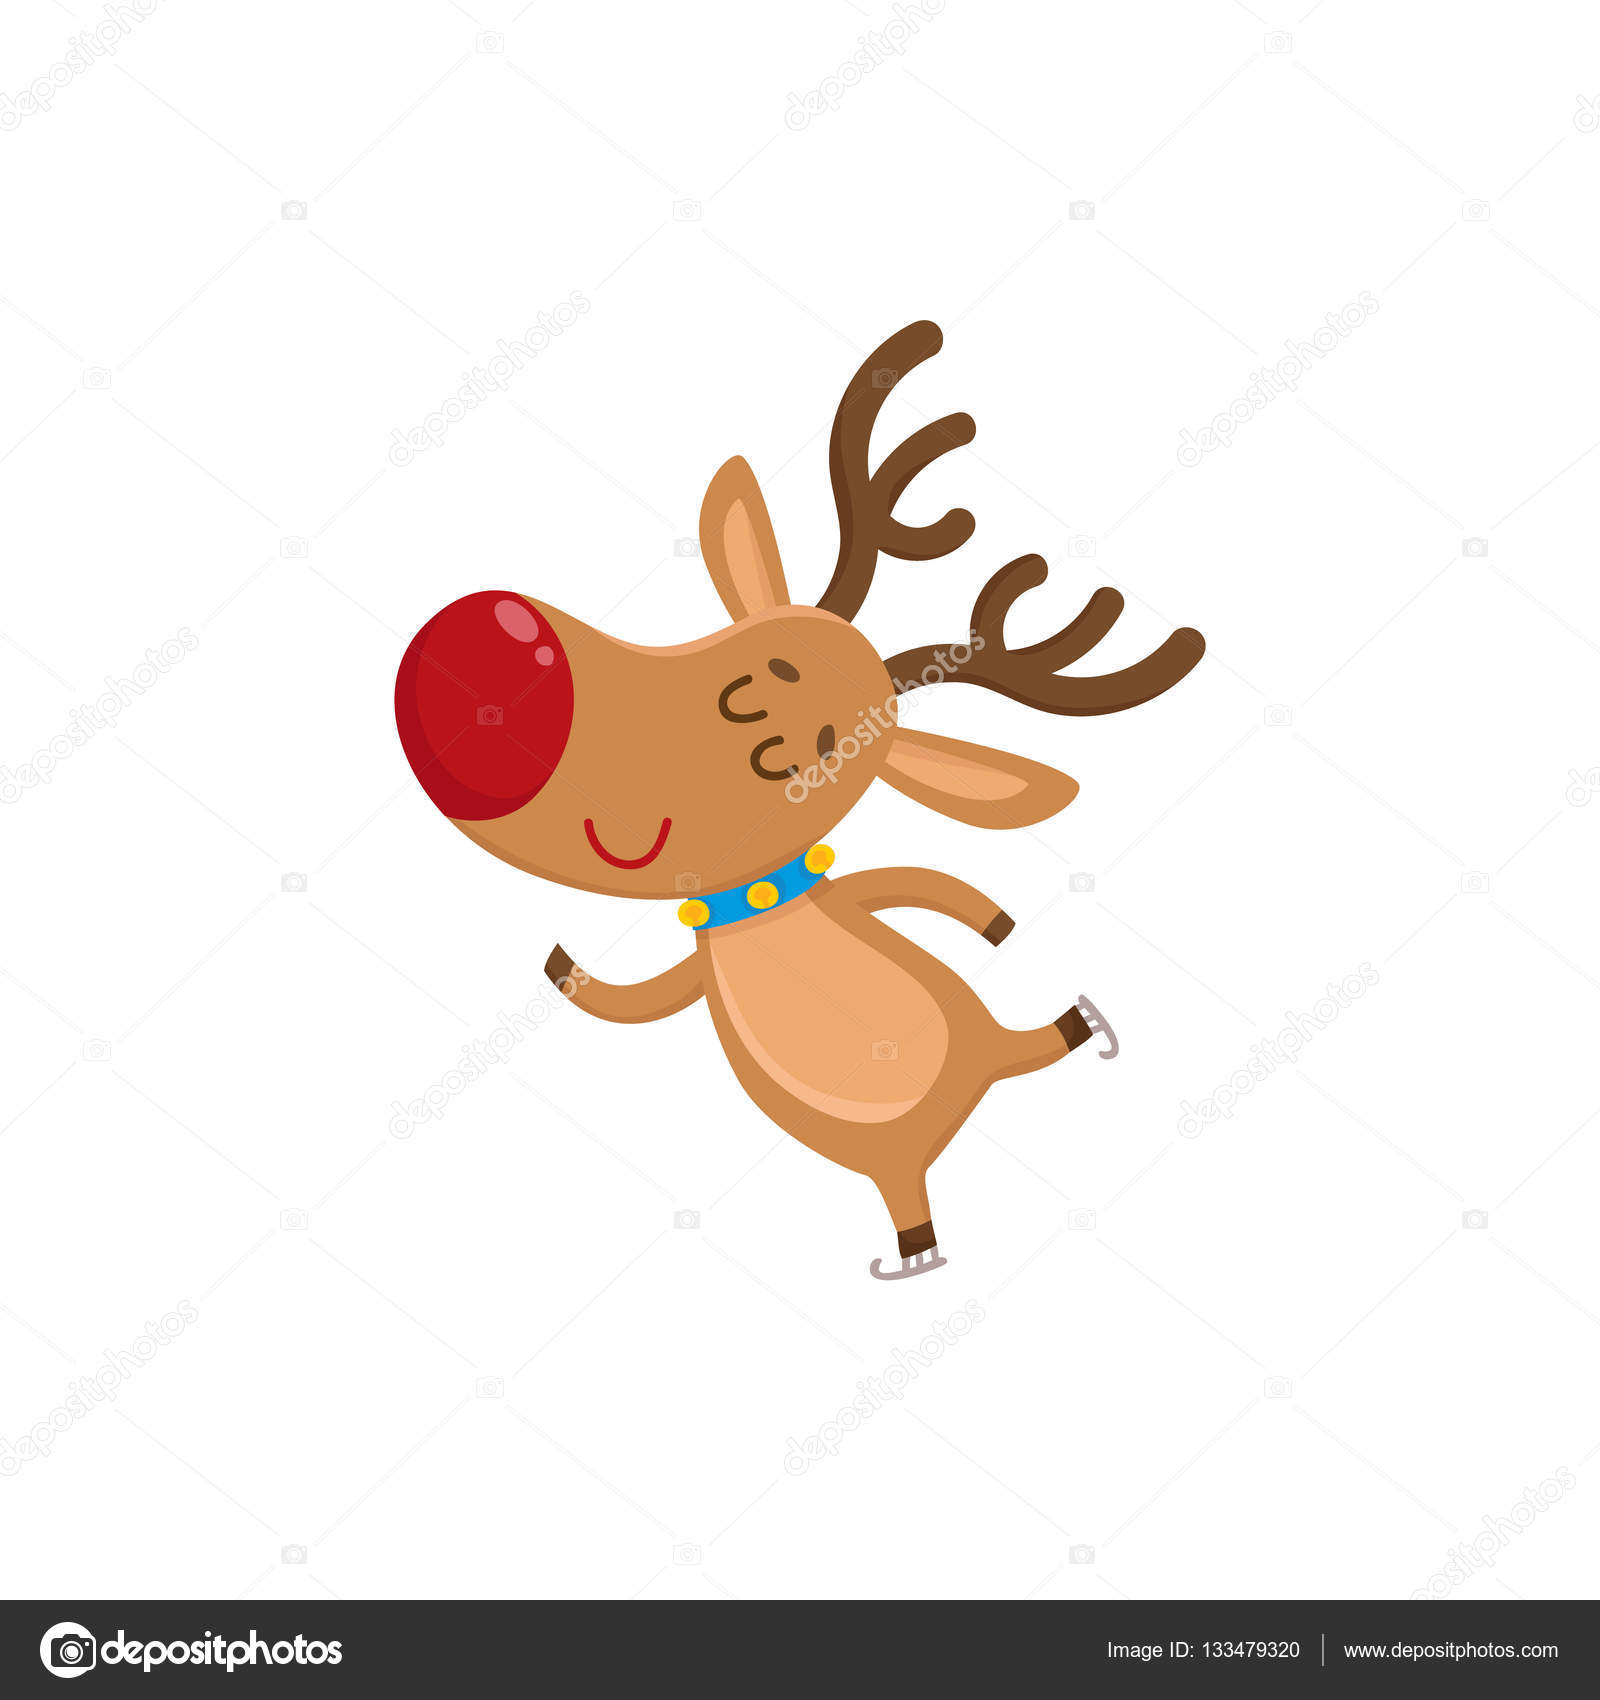 Cute And Funny Christmas Reindeer Ice Skating Happily Cartoon Vector Illustration Isolated On White Background Red Nosed Deer